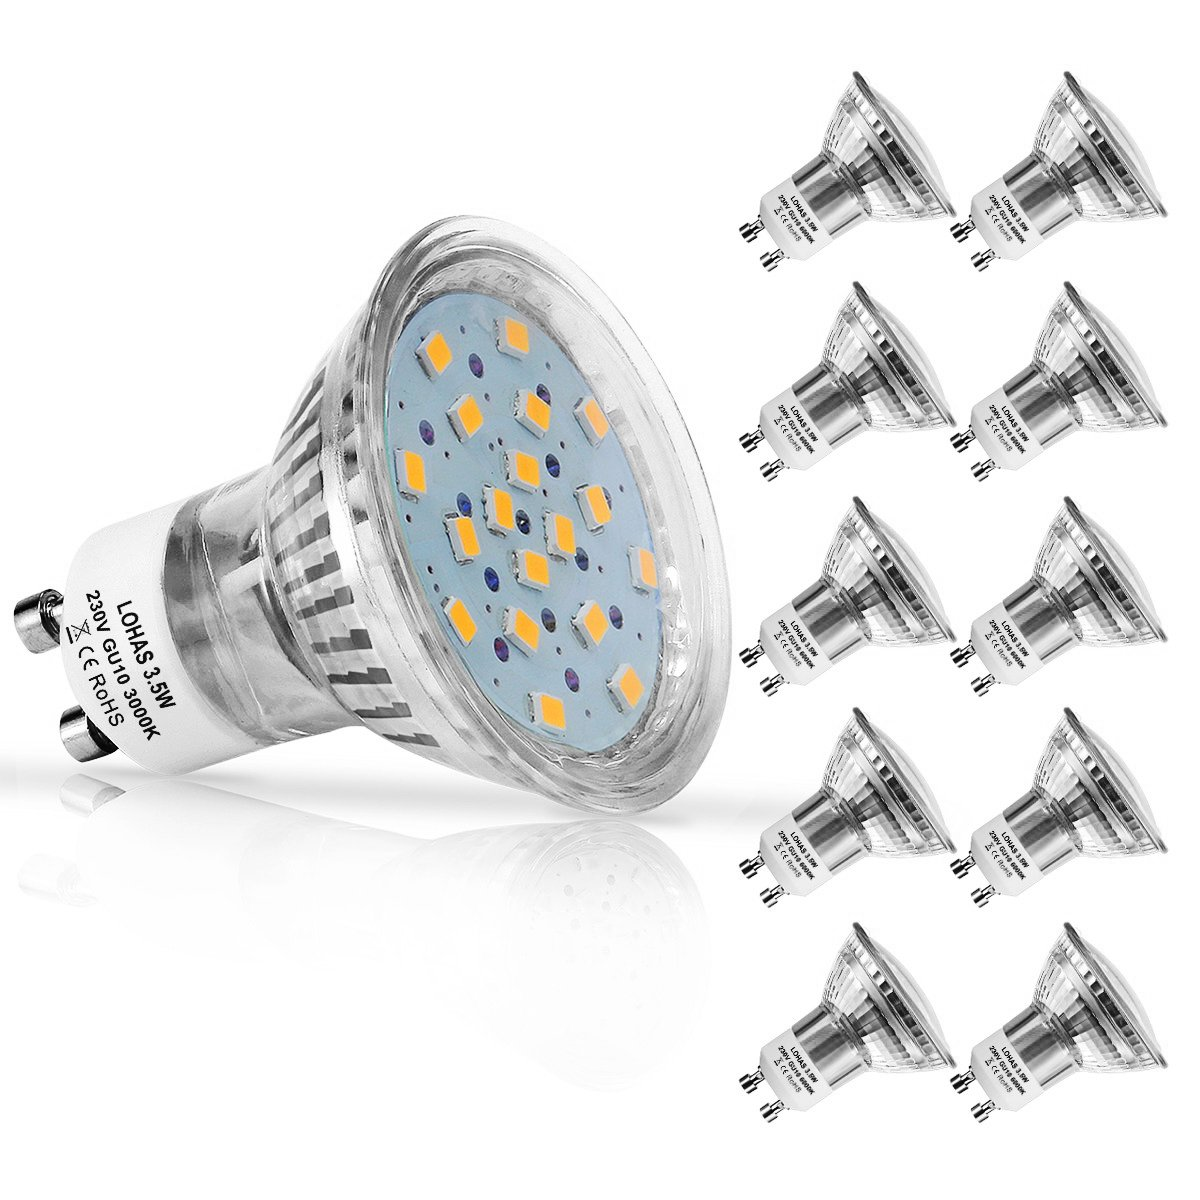 LOHAS® No-Regulable 3.5Watt GU10 LED Bombillas, Equivalente a 50Watt Lámpara Incandescente, 18 LED 2835 SMD Foco Luz Blanco Calído 3000K, 380lm, ...